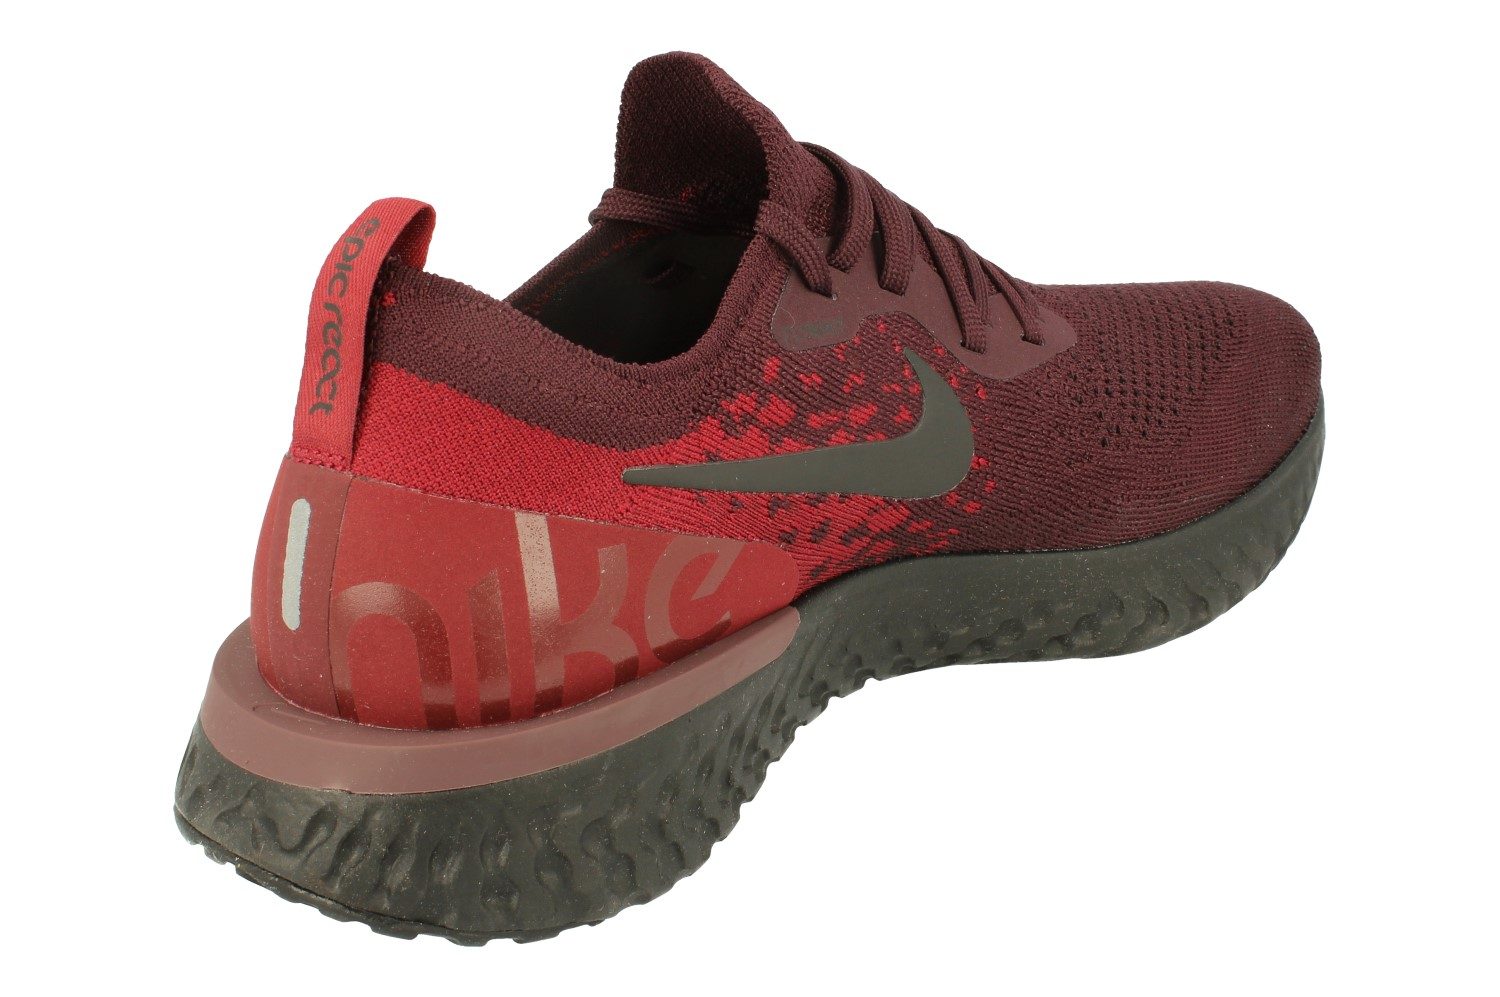 54ff907c9baa Nike Epic React Flyknit Mens Running Trainers At0054(Deep Burgundy ...